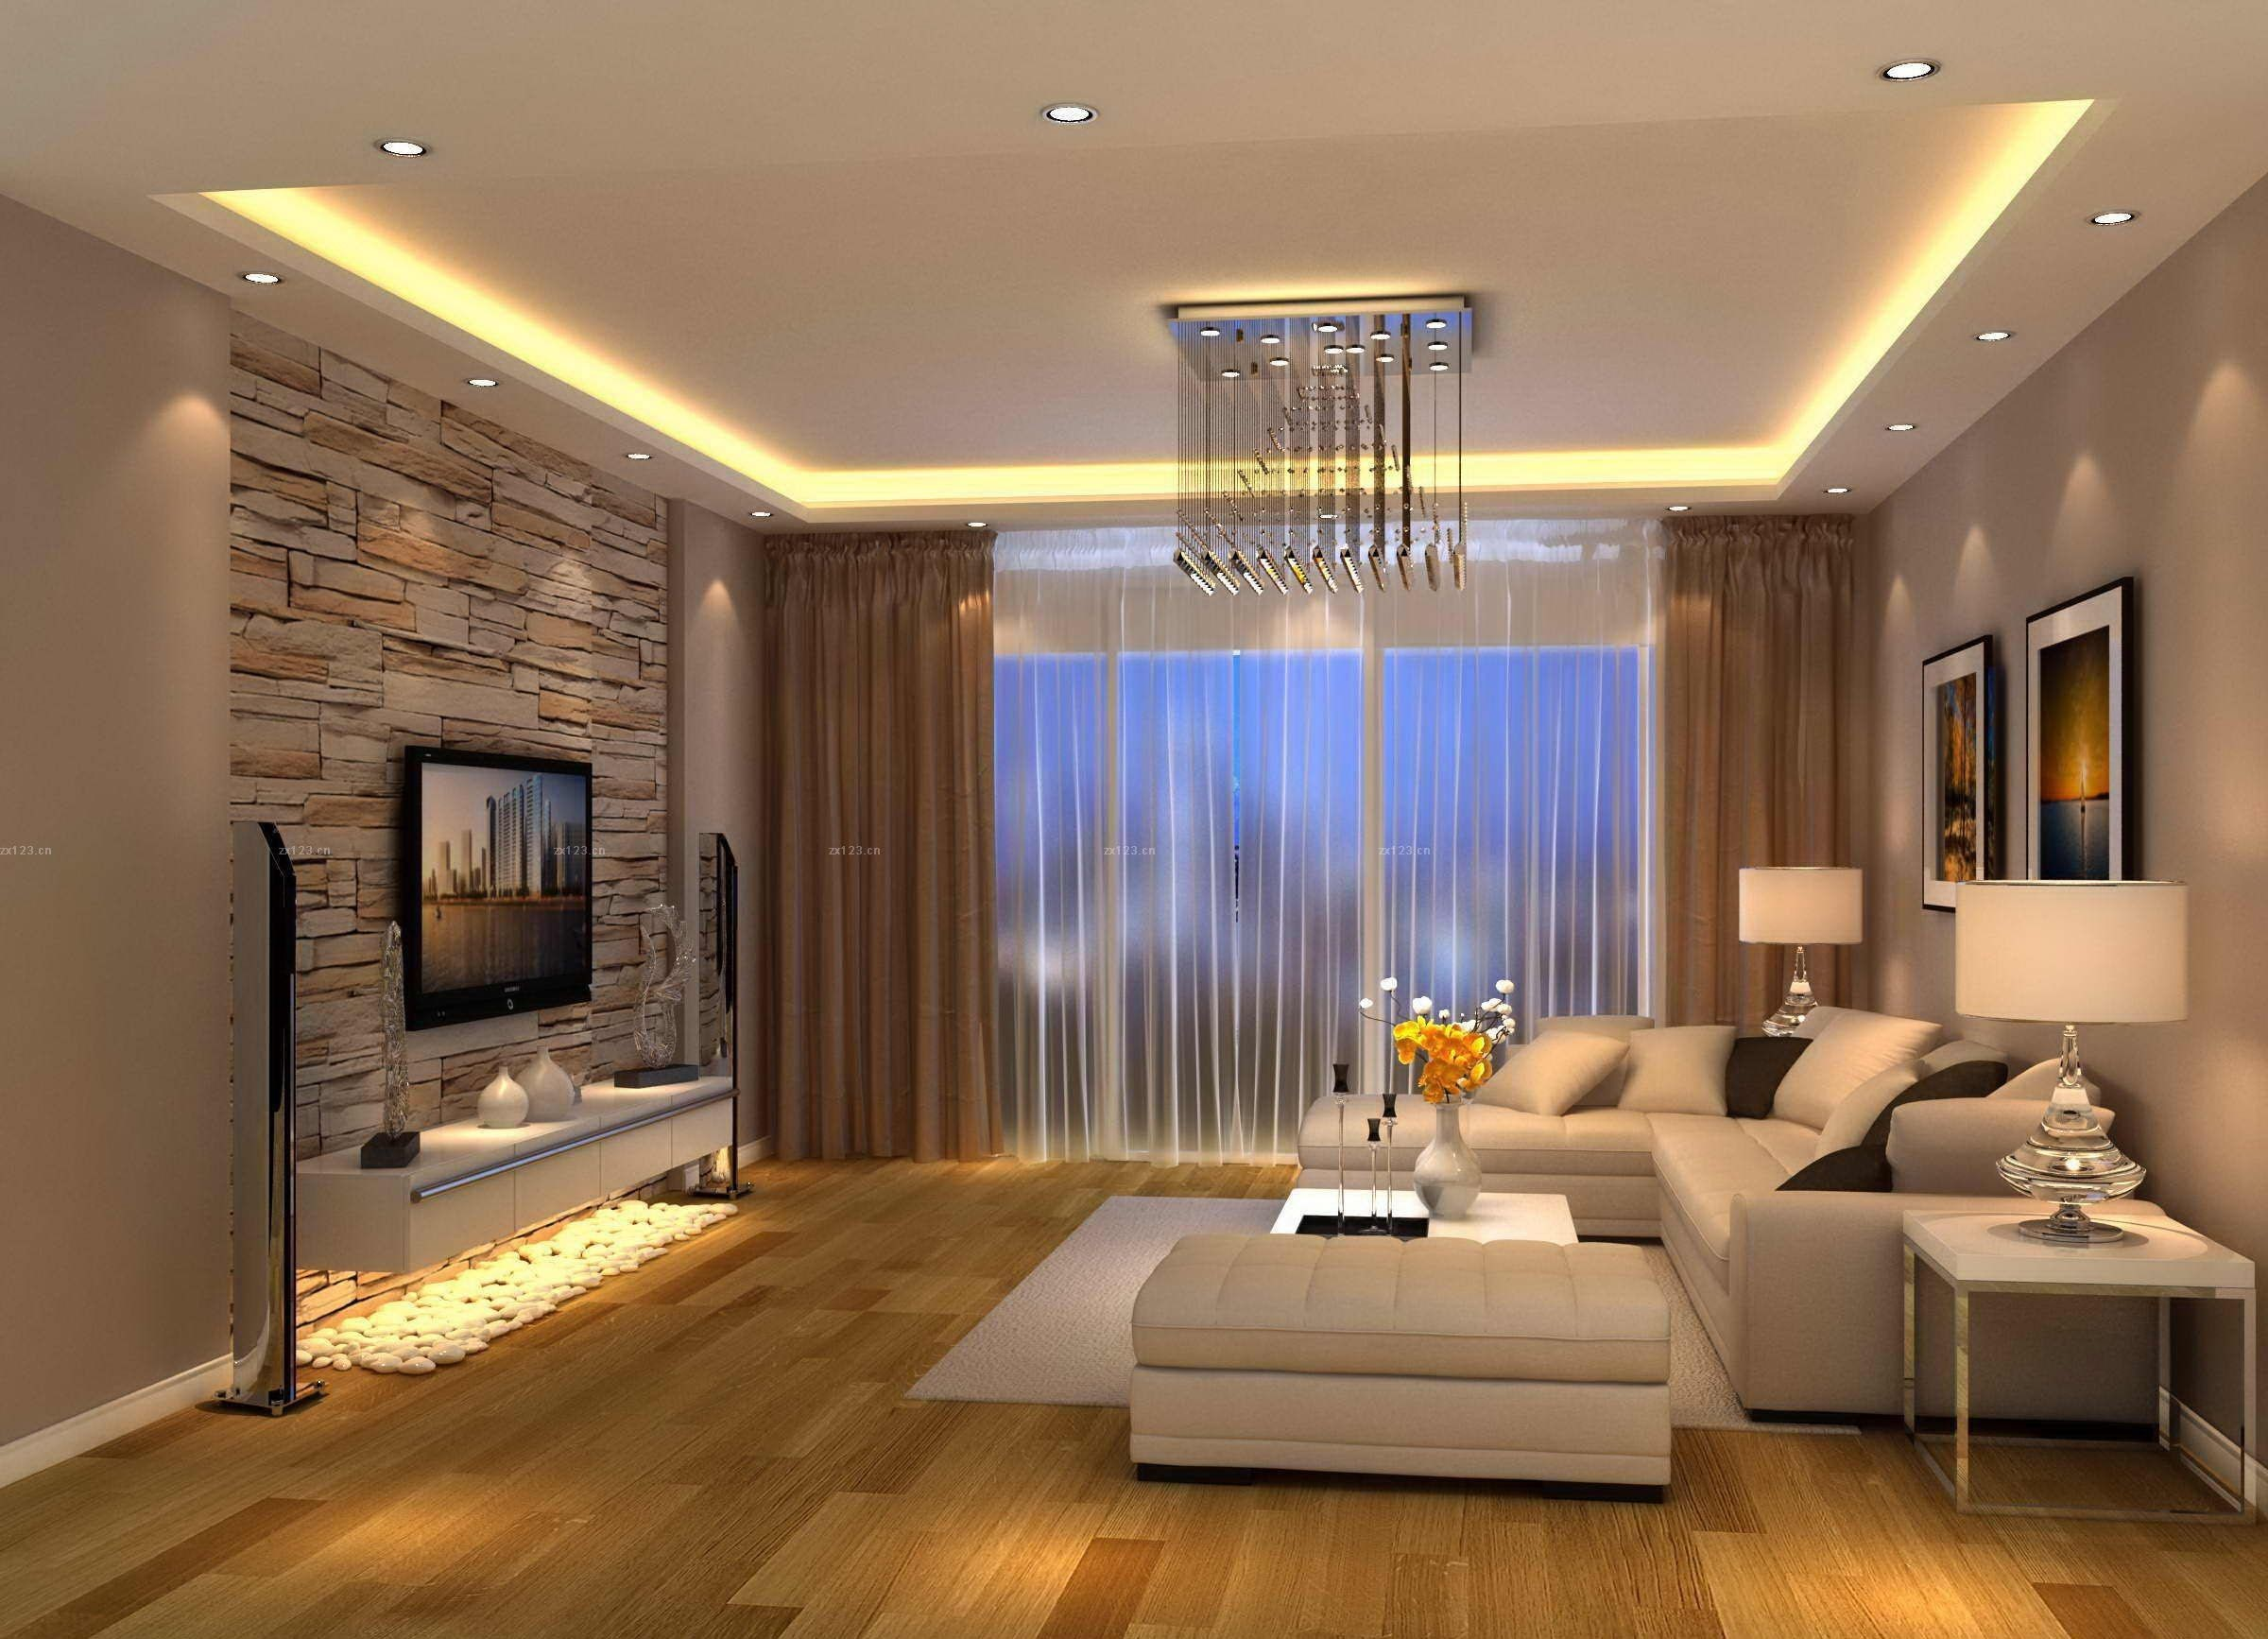 How To Decorate A Brown Living Room Cara Menghias Ruang Tamu yang Cokelat